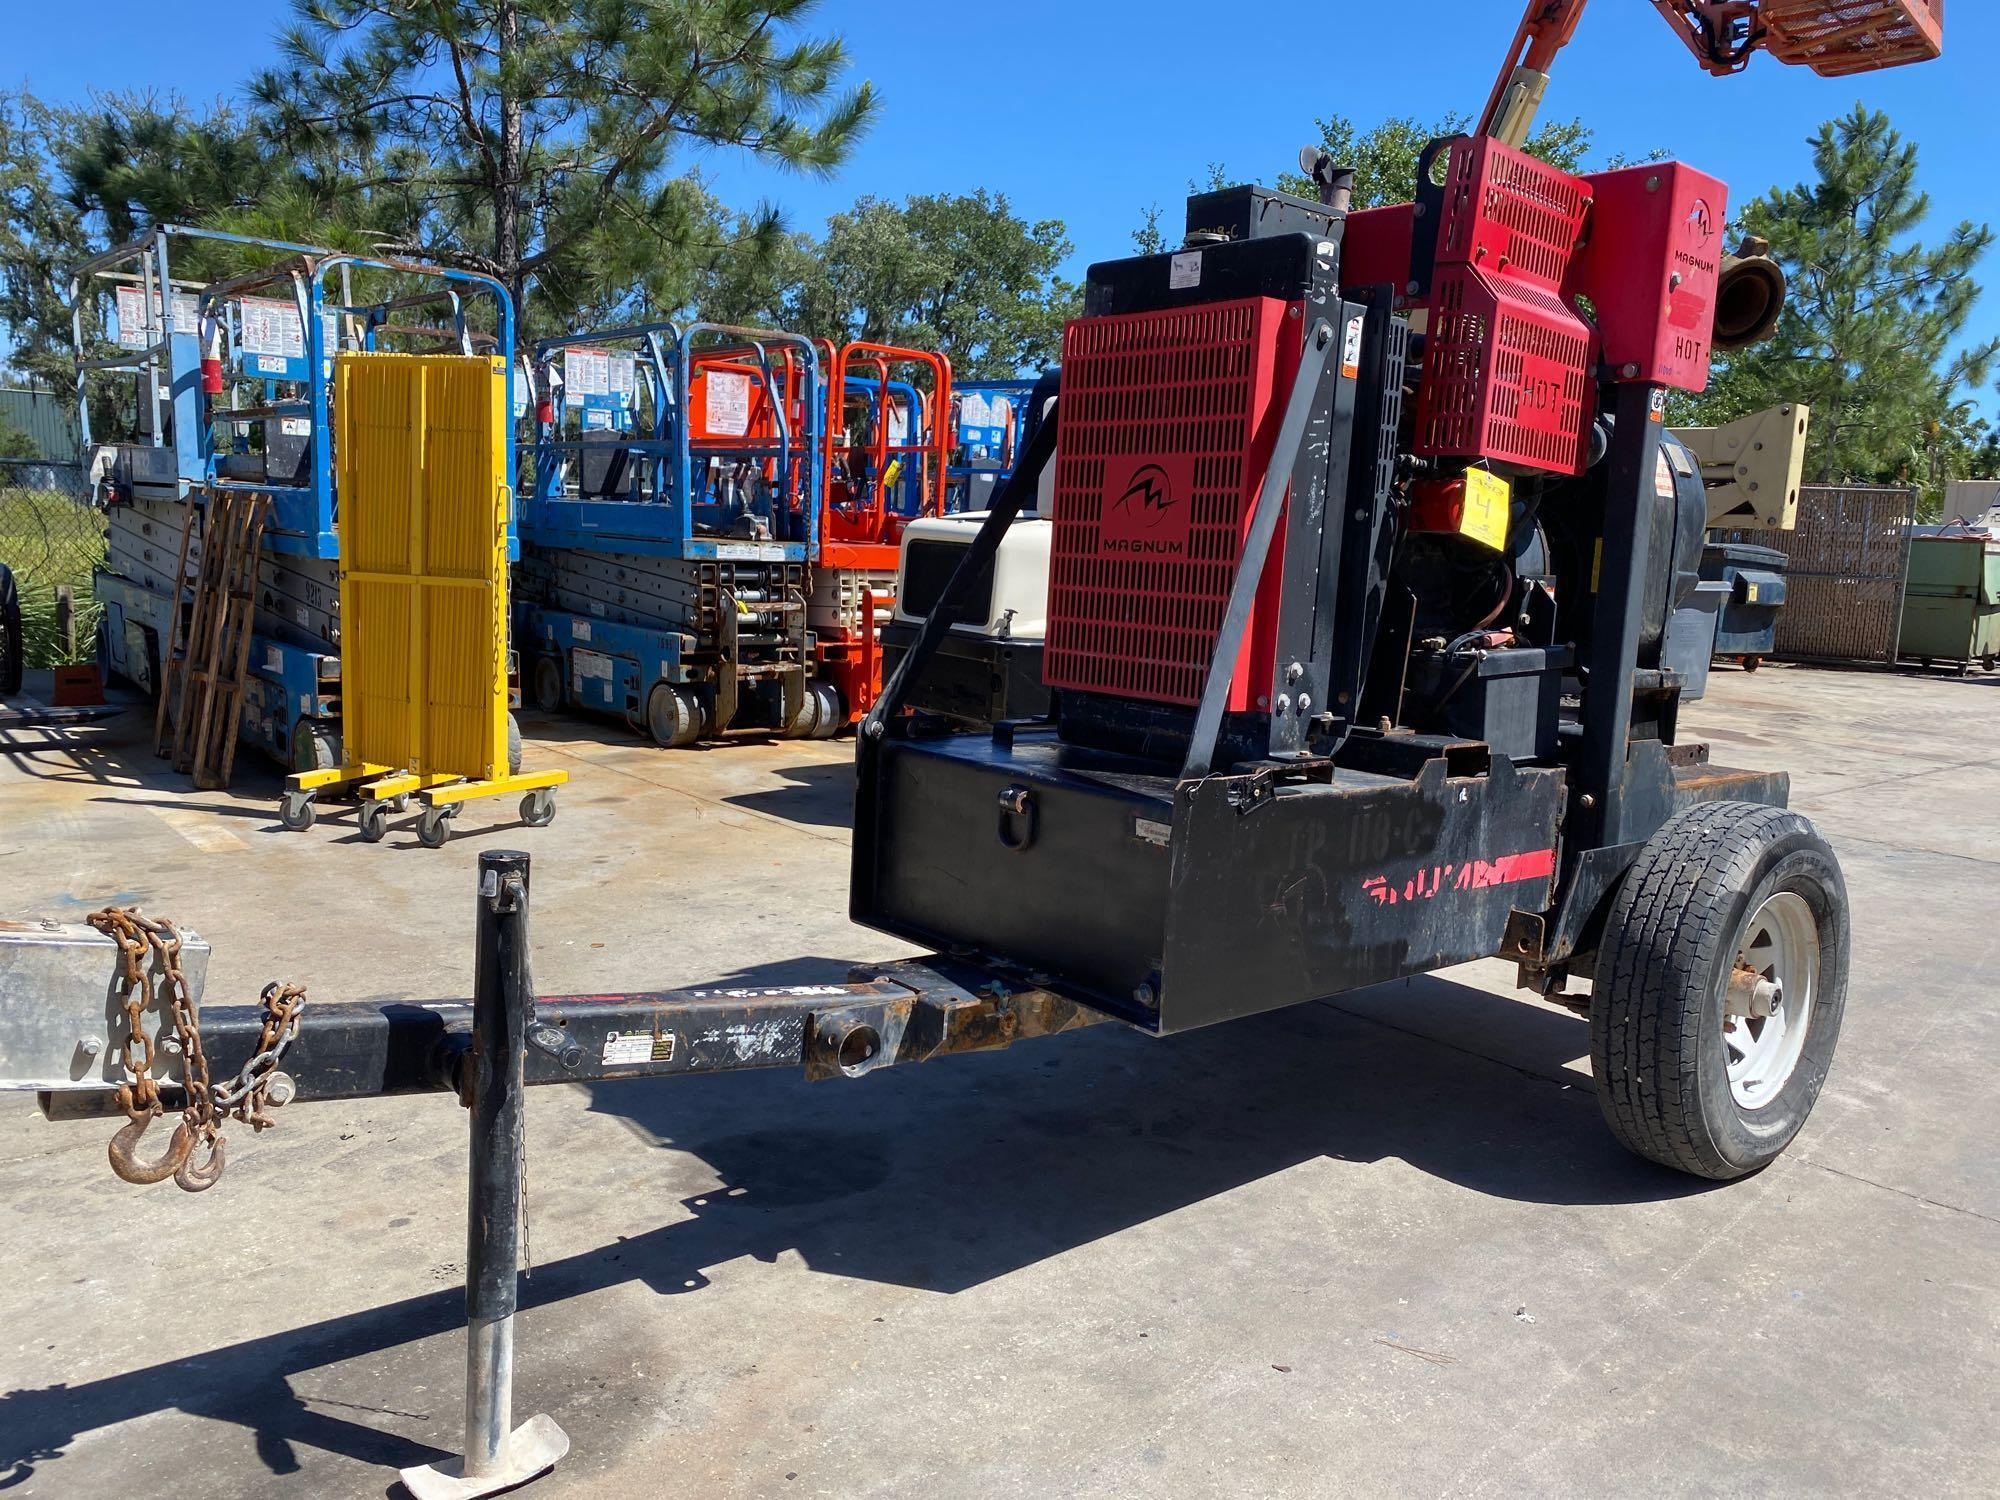 TRAILER MOUNTED MAGNUM 4 INCH DIESEL PUMP, RUNS AND OPERATES - Image 2 of 9